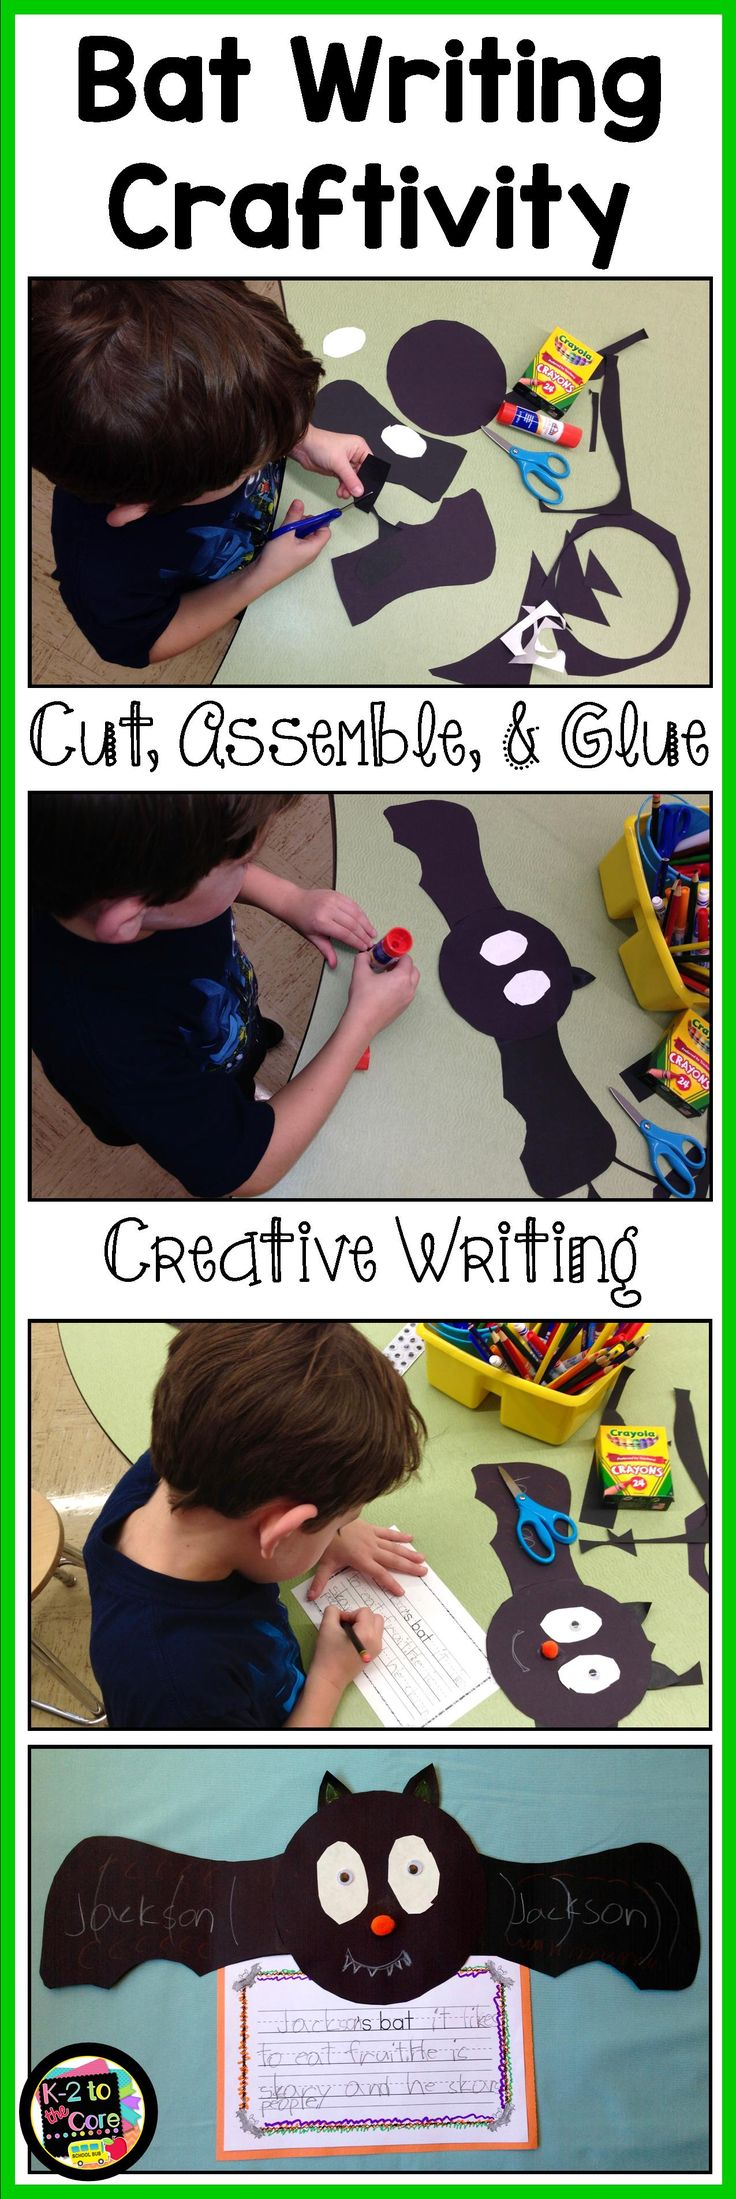 This engaging Halloween project will have your kindergarten, first, or second grade students exercising their creative writing skills as well as their fine motor muscles and visual/perceptual skills. All of this is happening as the children cut, glue, and assemble a bat; and then write about it! This craftivity will spookify your classroom in anticipation for Halloween. These projects are perfect to hang on a classroom wire or bulletin board. They also look great as a hallway display.